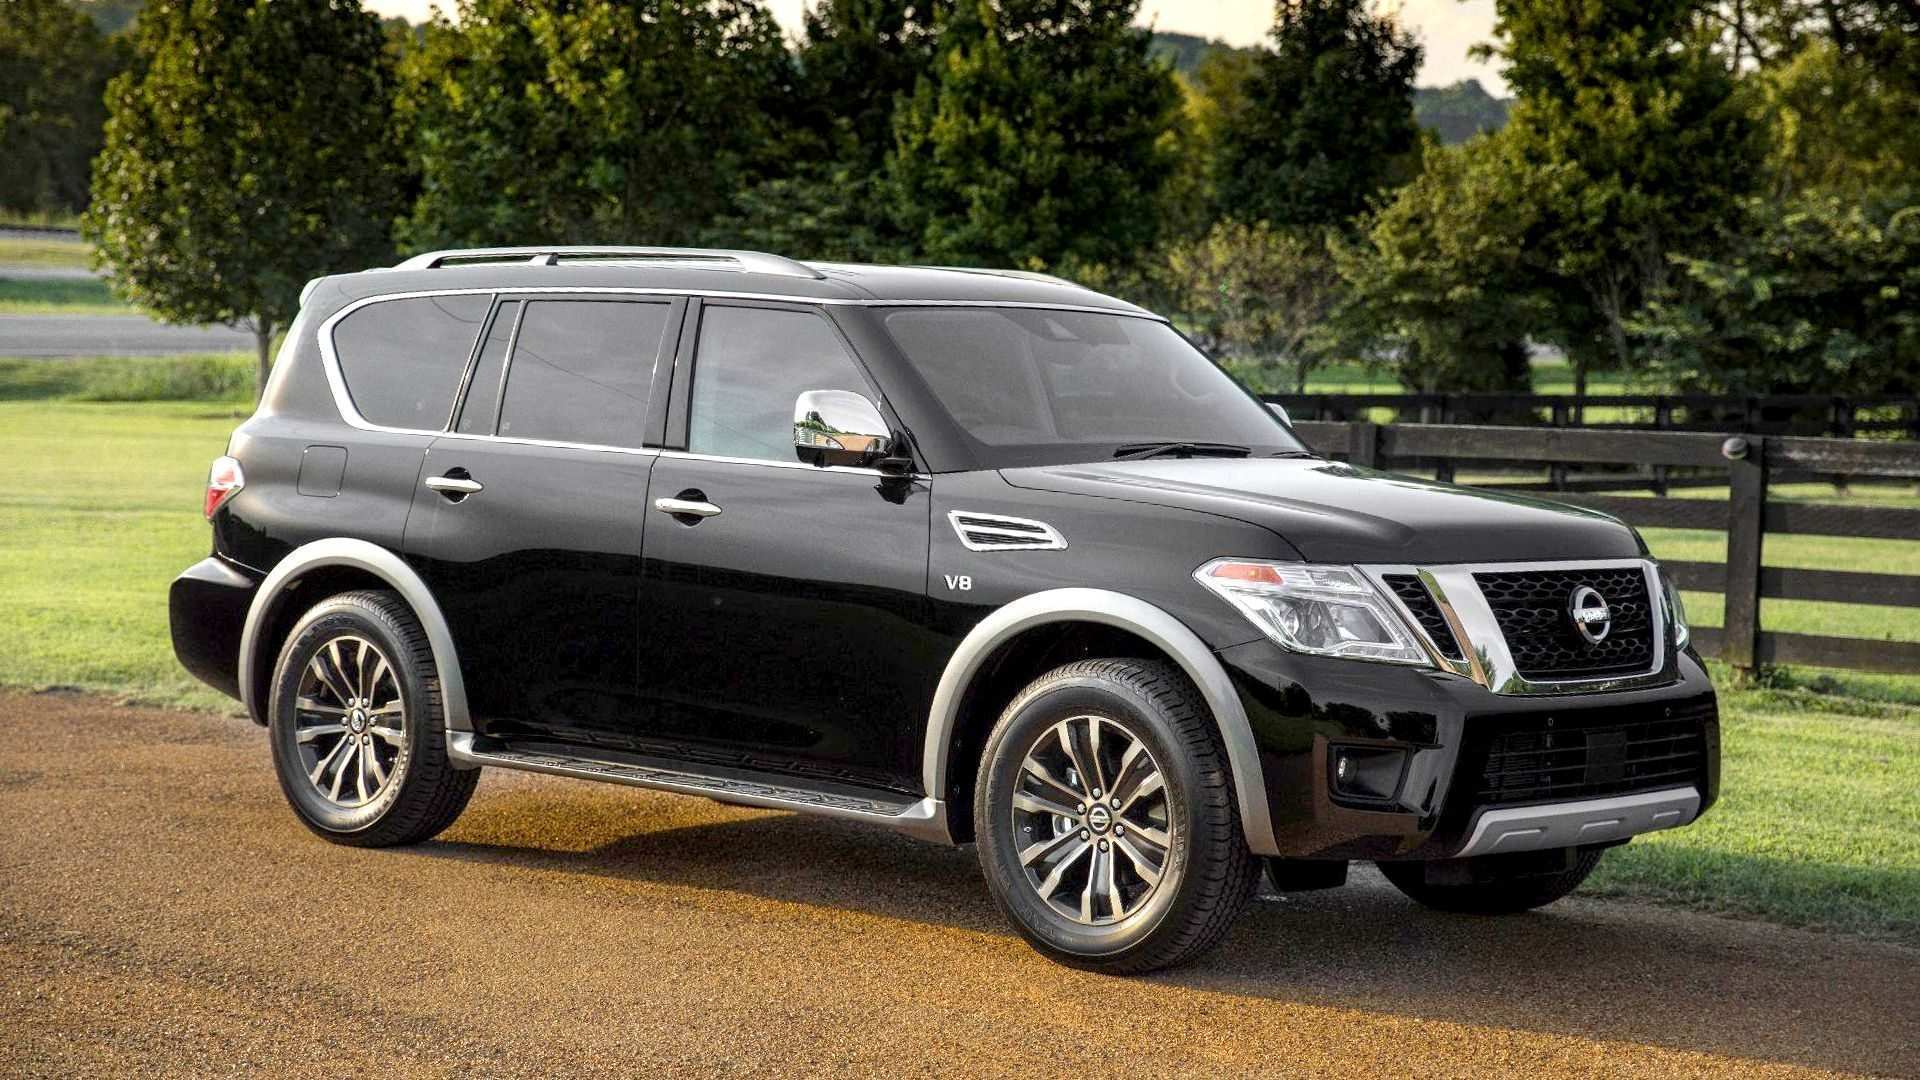 20 Gallery of Nissan Armada 2019 Overview First Drive for Nissan Armada 2019 Overview